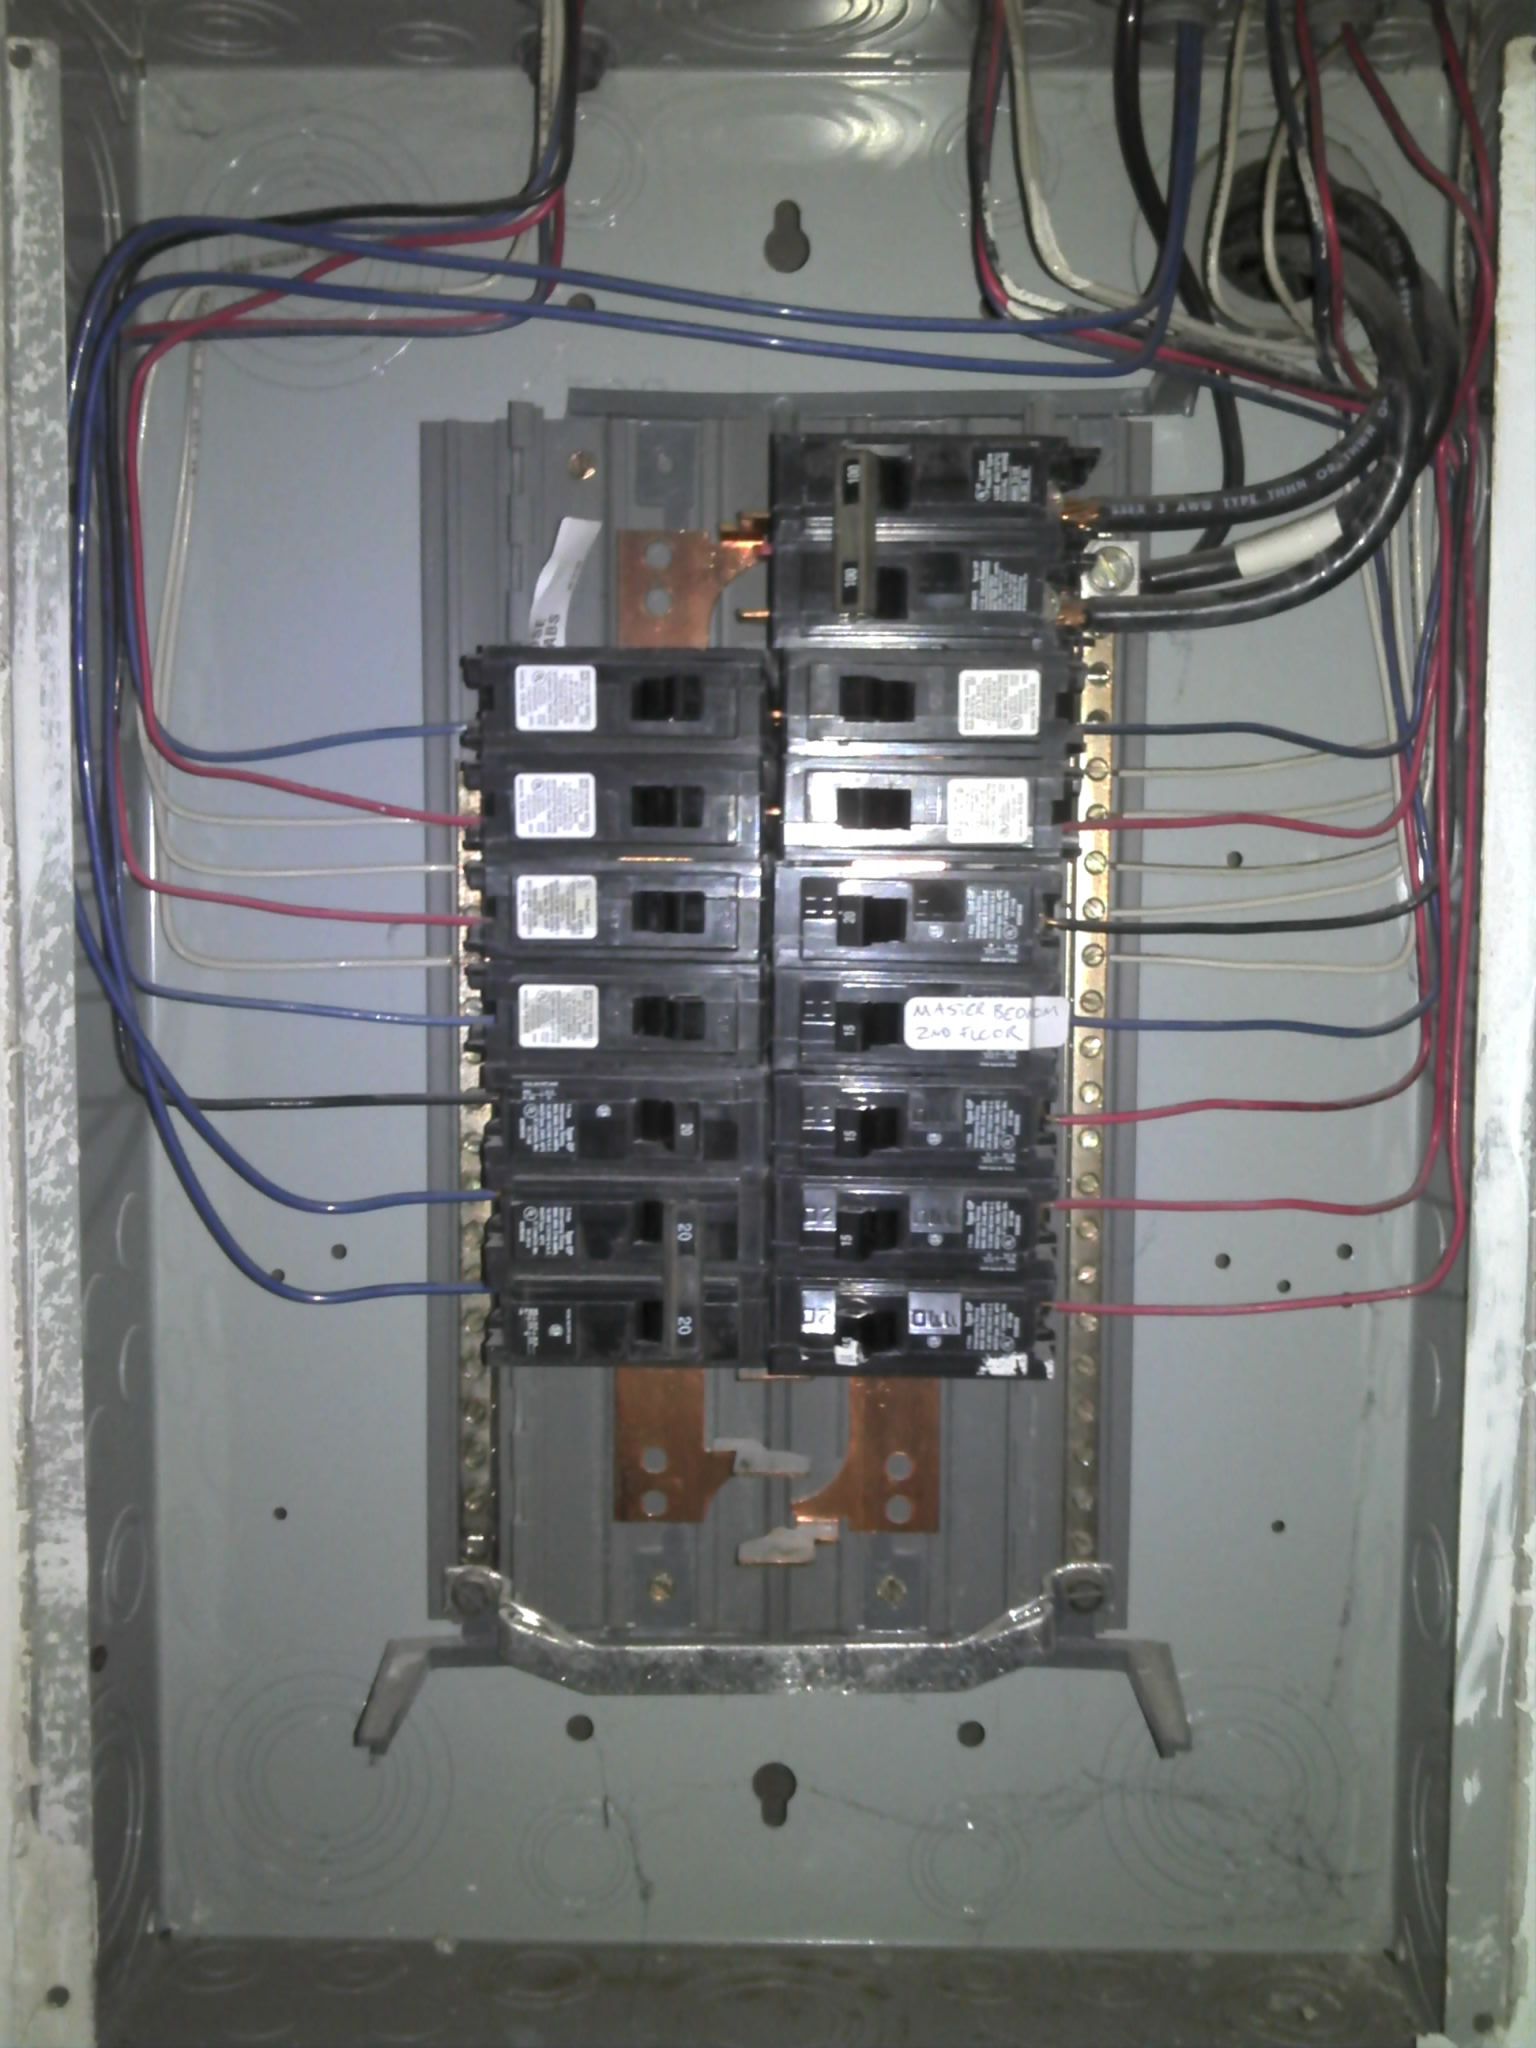 blue wires are a no no in a panel